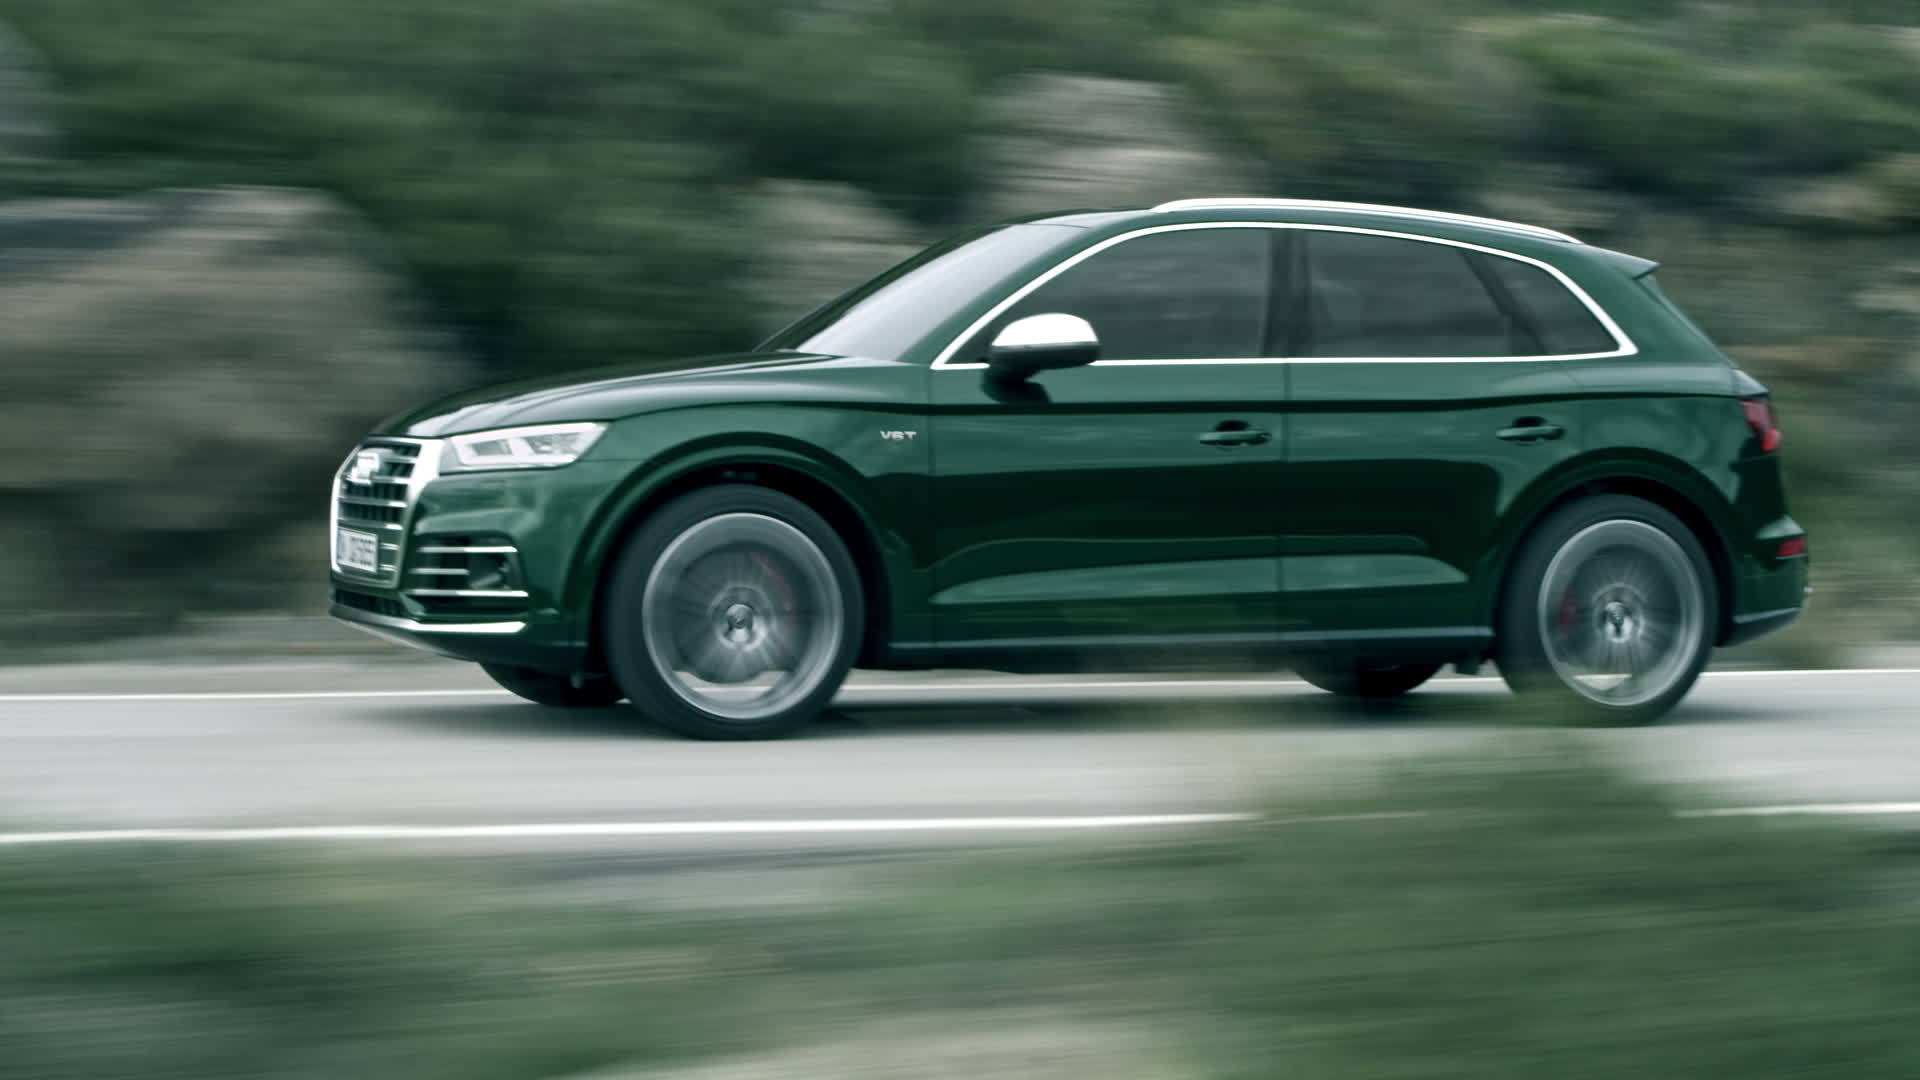 Audi SQ5 - The pinnacle of the Q5 model series